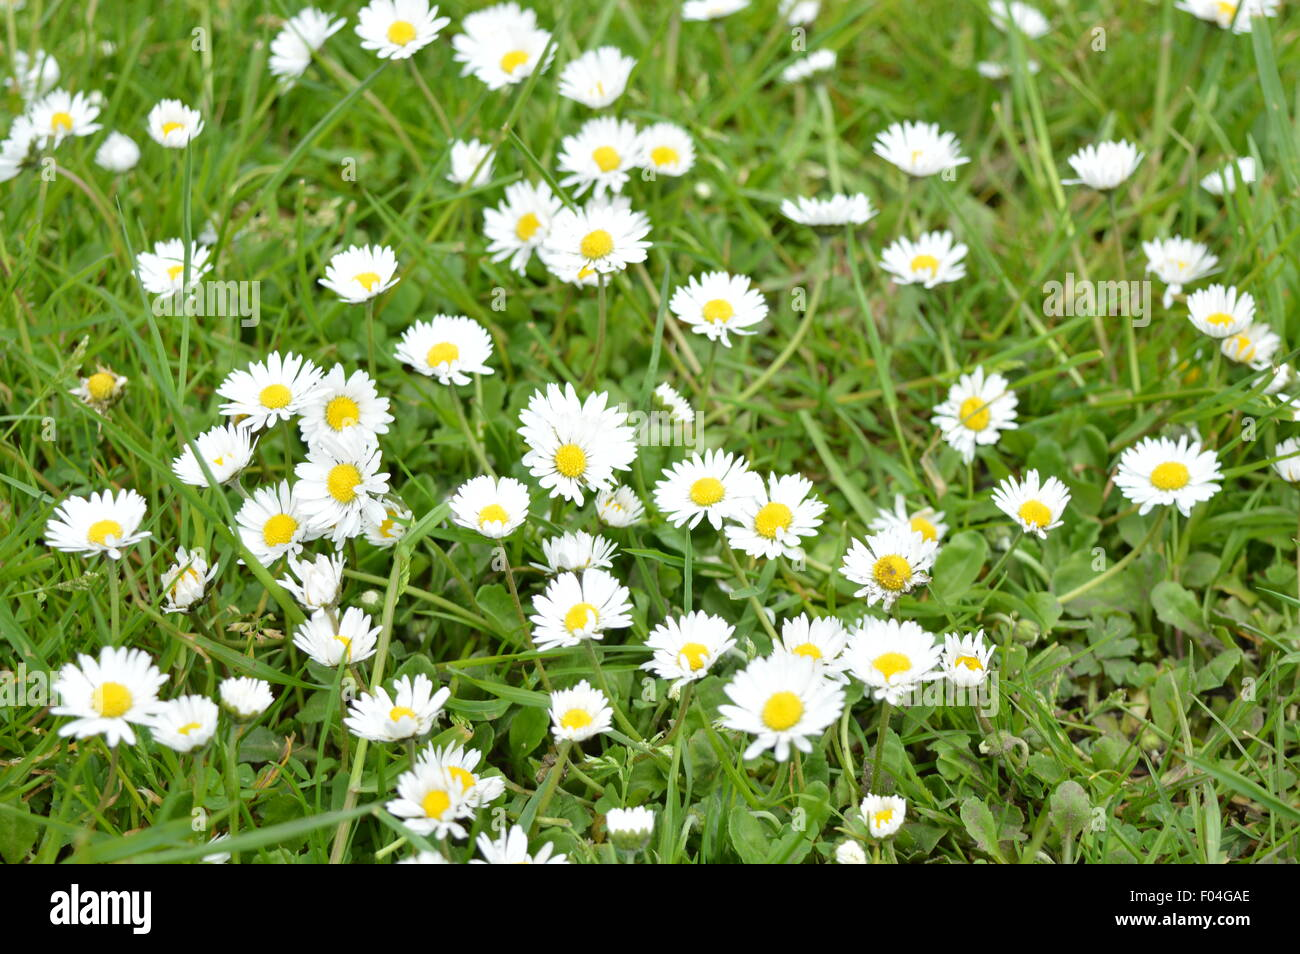 Nice And Beautiful Small White Flowers On The Grass Stock Photo